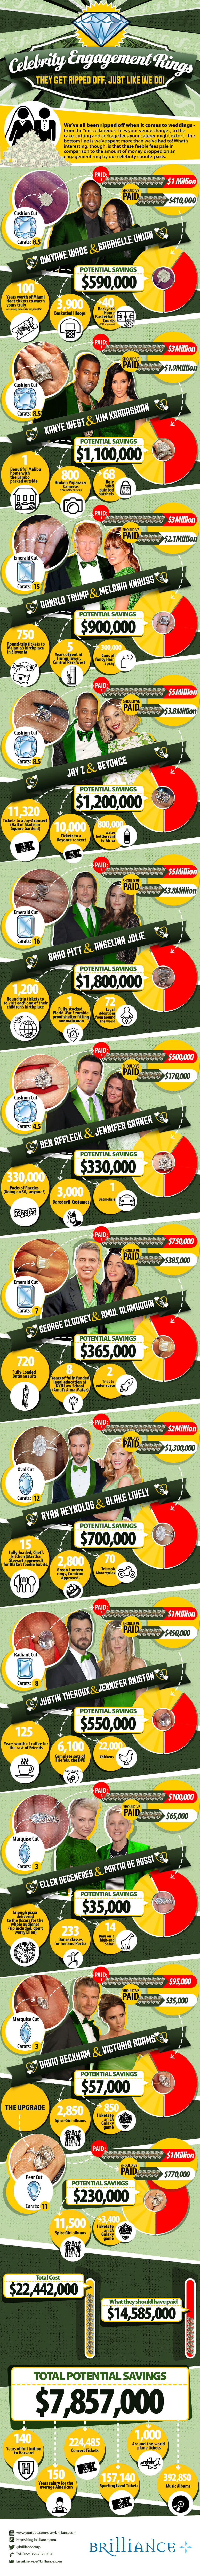 Celebrity Engagement Ring Rip Off: What They're Really Worth [Inforgraphic]